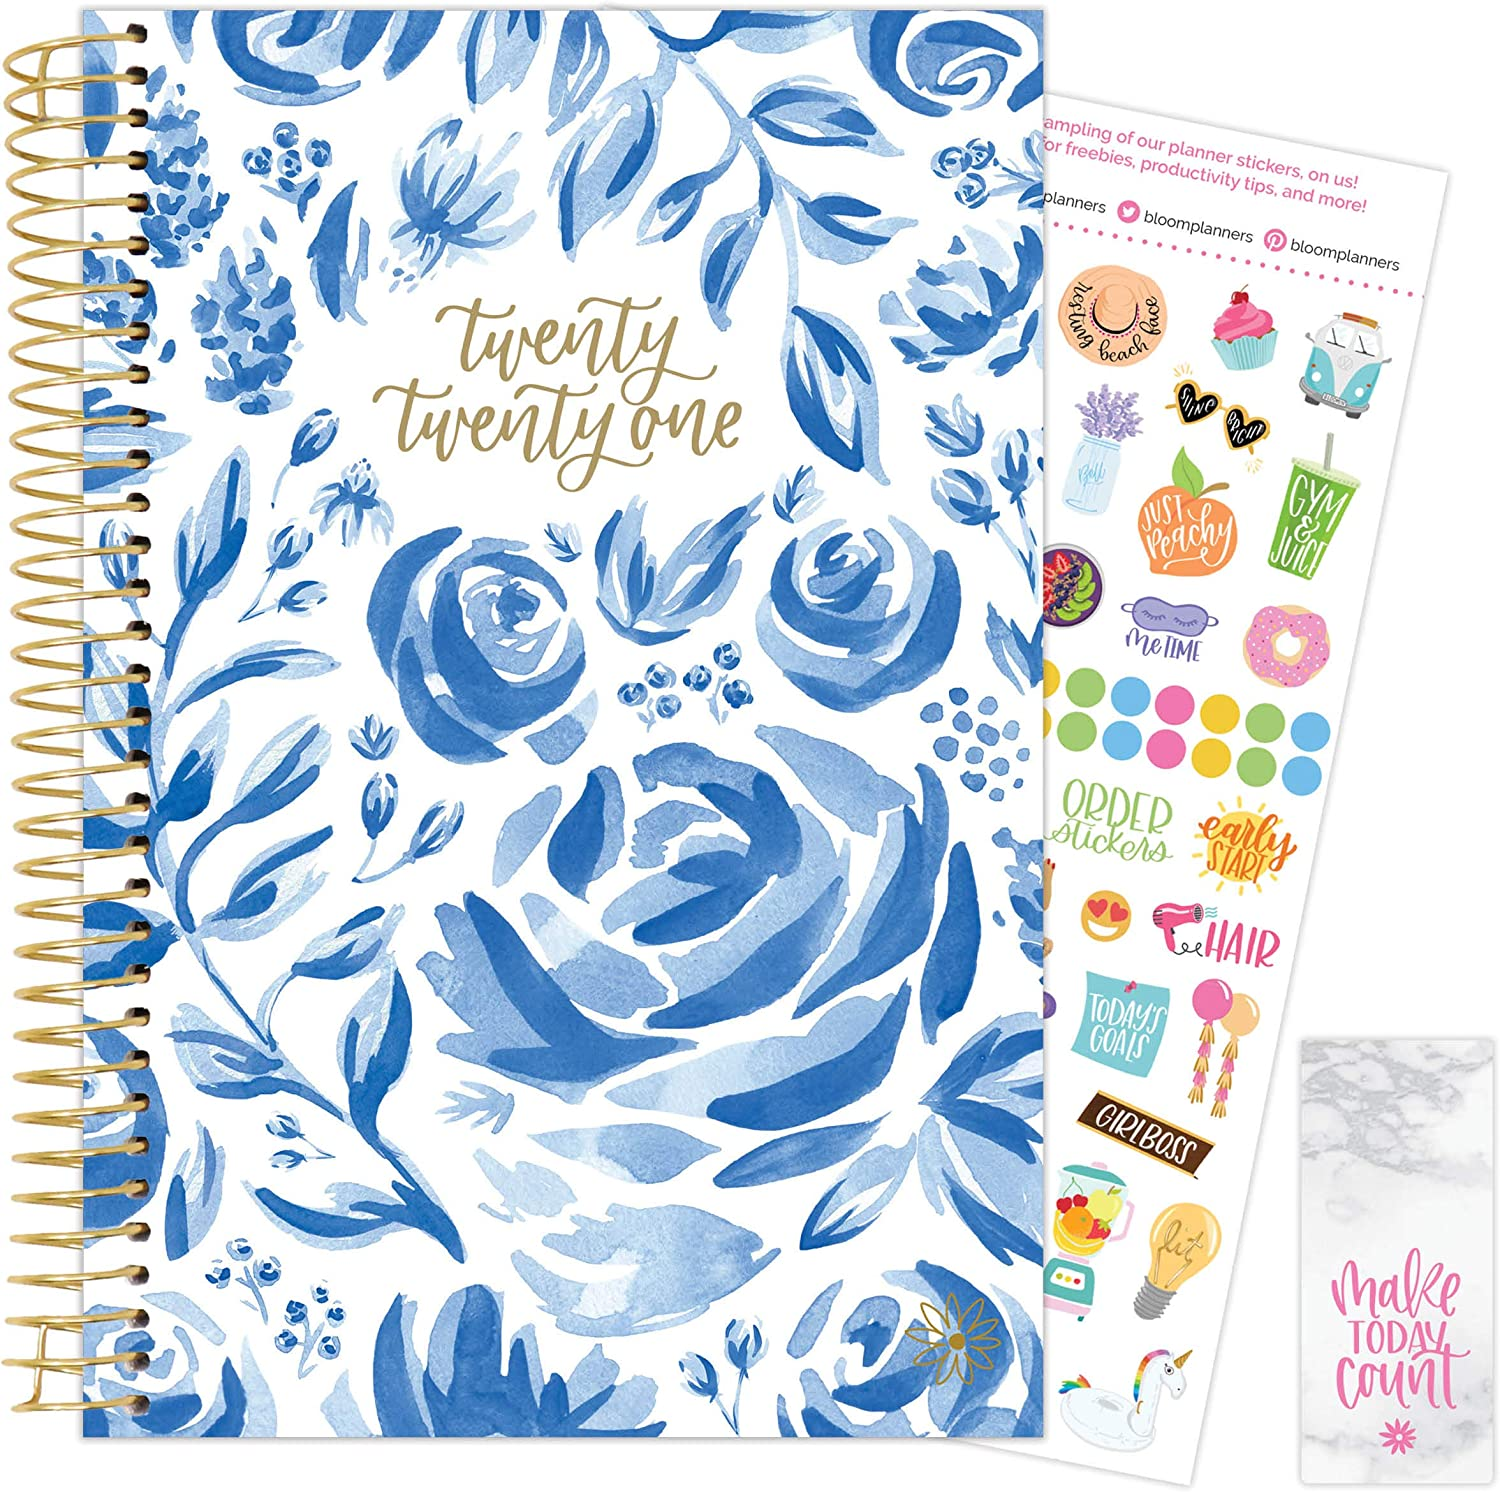 """bloom daily planners 2021 Calendar Year Day Planner (January 2021 - December 2021) - 6"""" x 8.25"""" - Weekly/Monthly Agenda Organizer with Stickers and Bookmark - Blue & White Floral"""